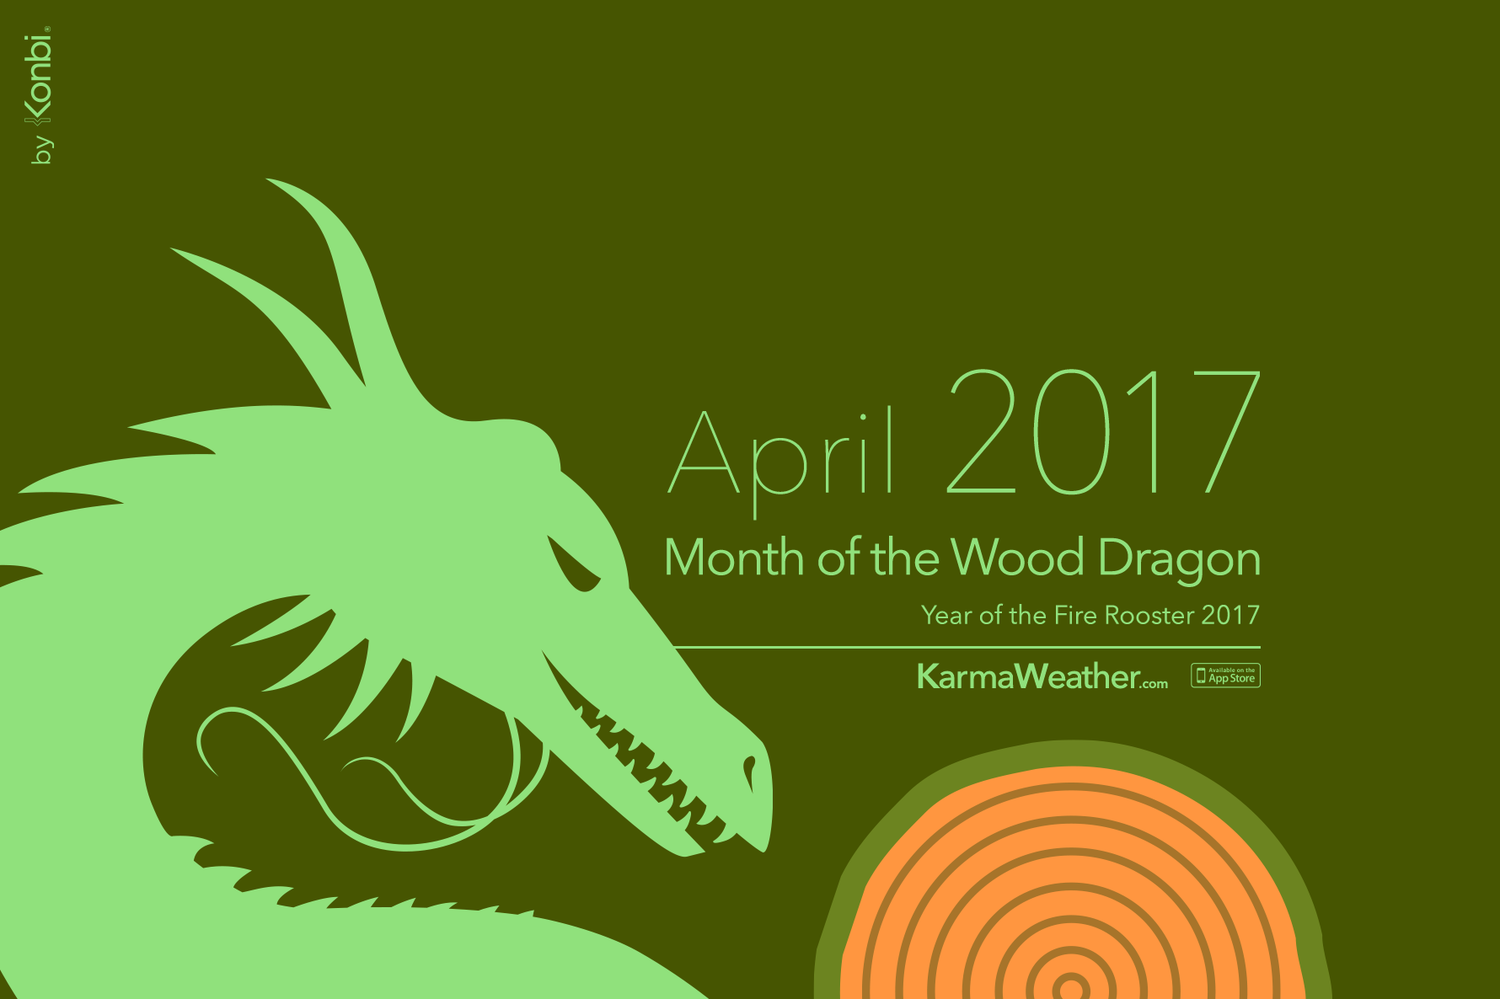 April 2017 Daily Horoscope - Dragon Month 2017 - Monthly horoscope